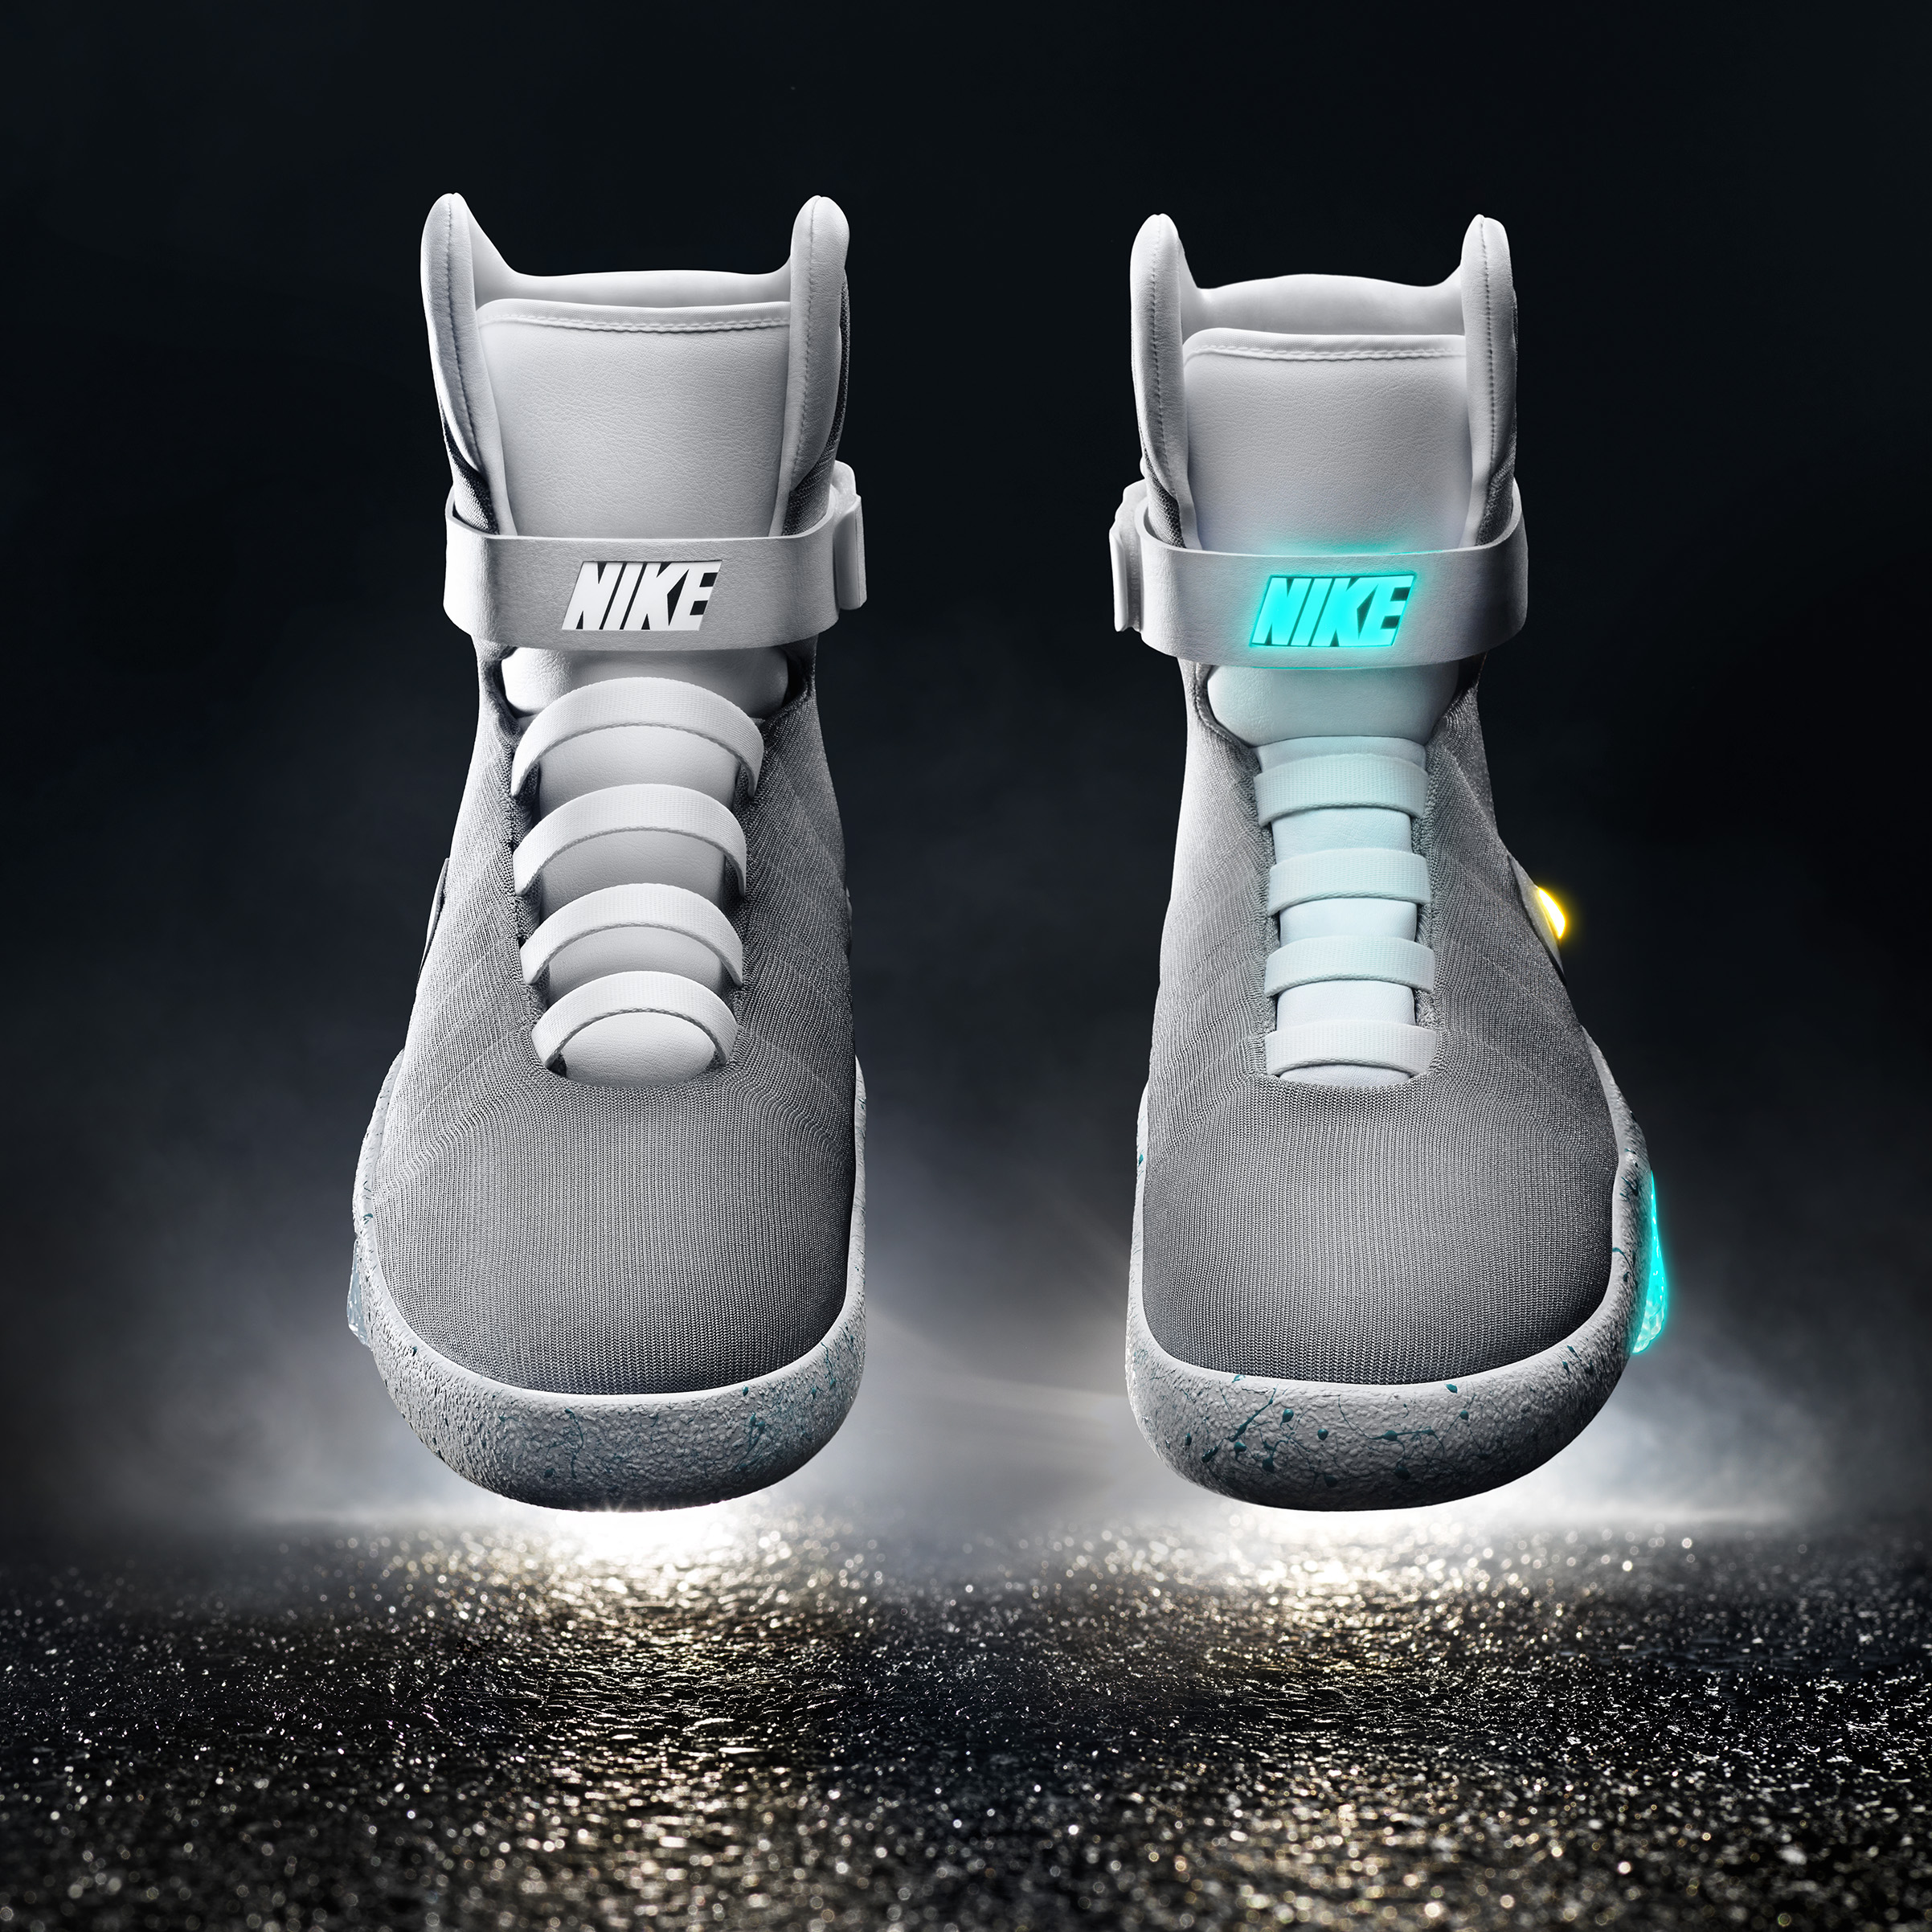 How Much Do Nike Mag Shoes Cost